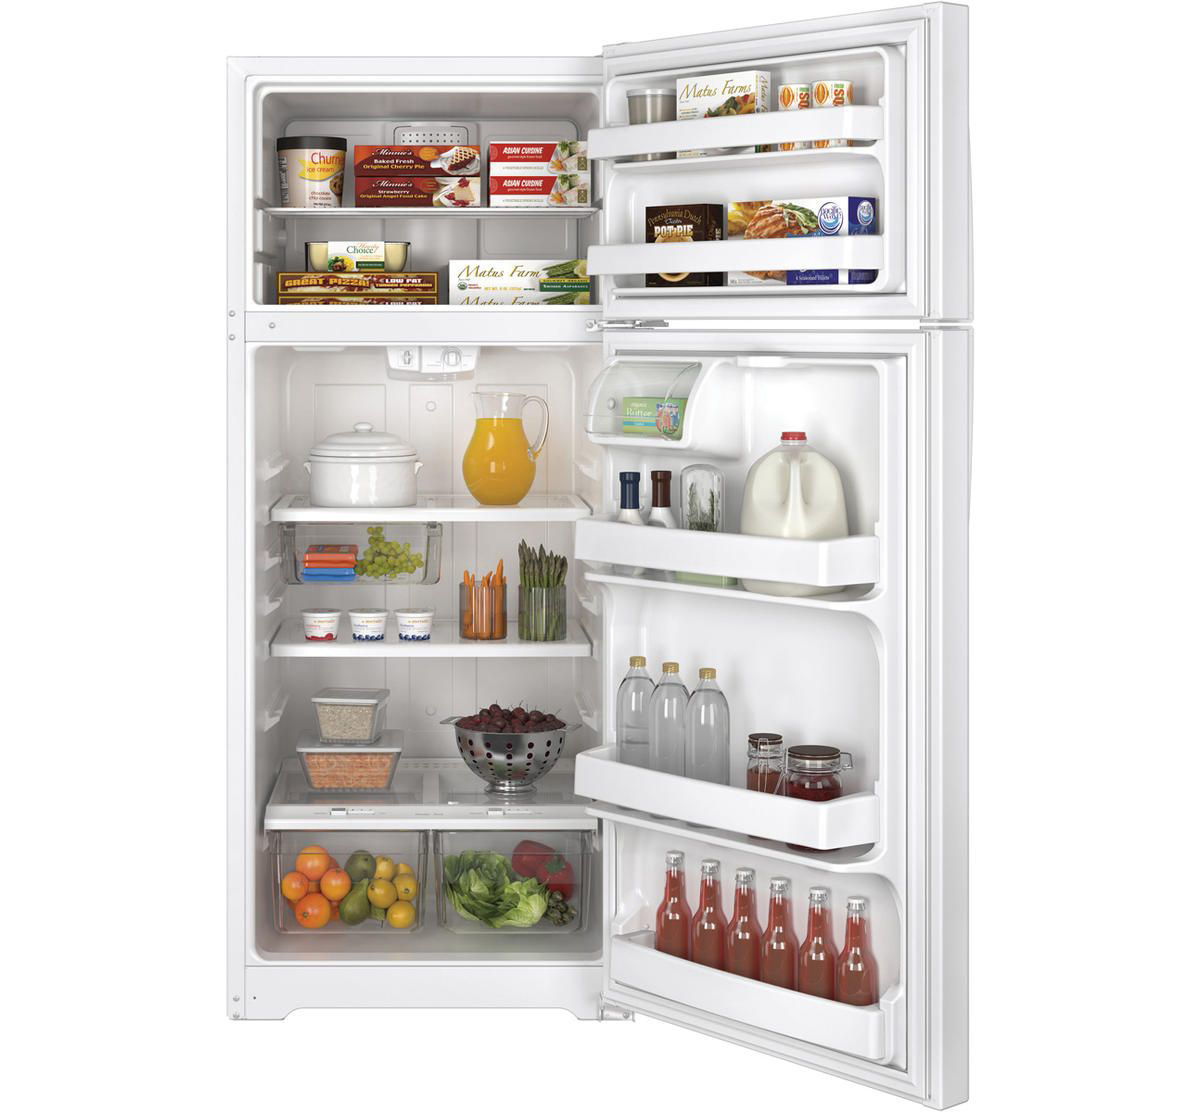 Picture of G.E. TOP FREEZER REFRIGERATOR